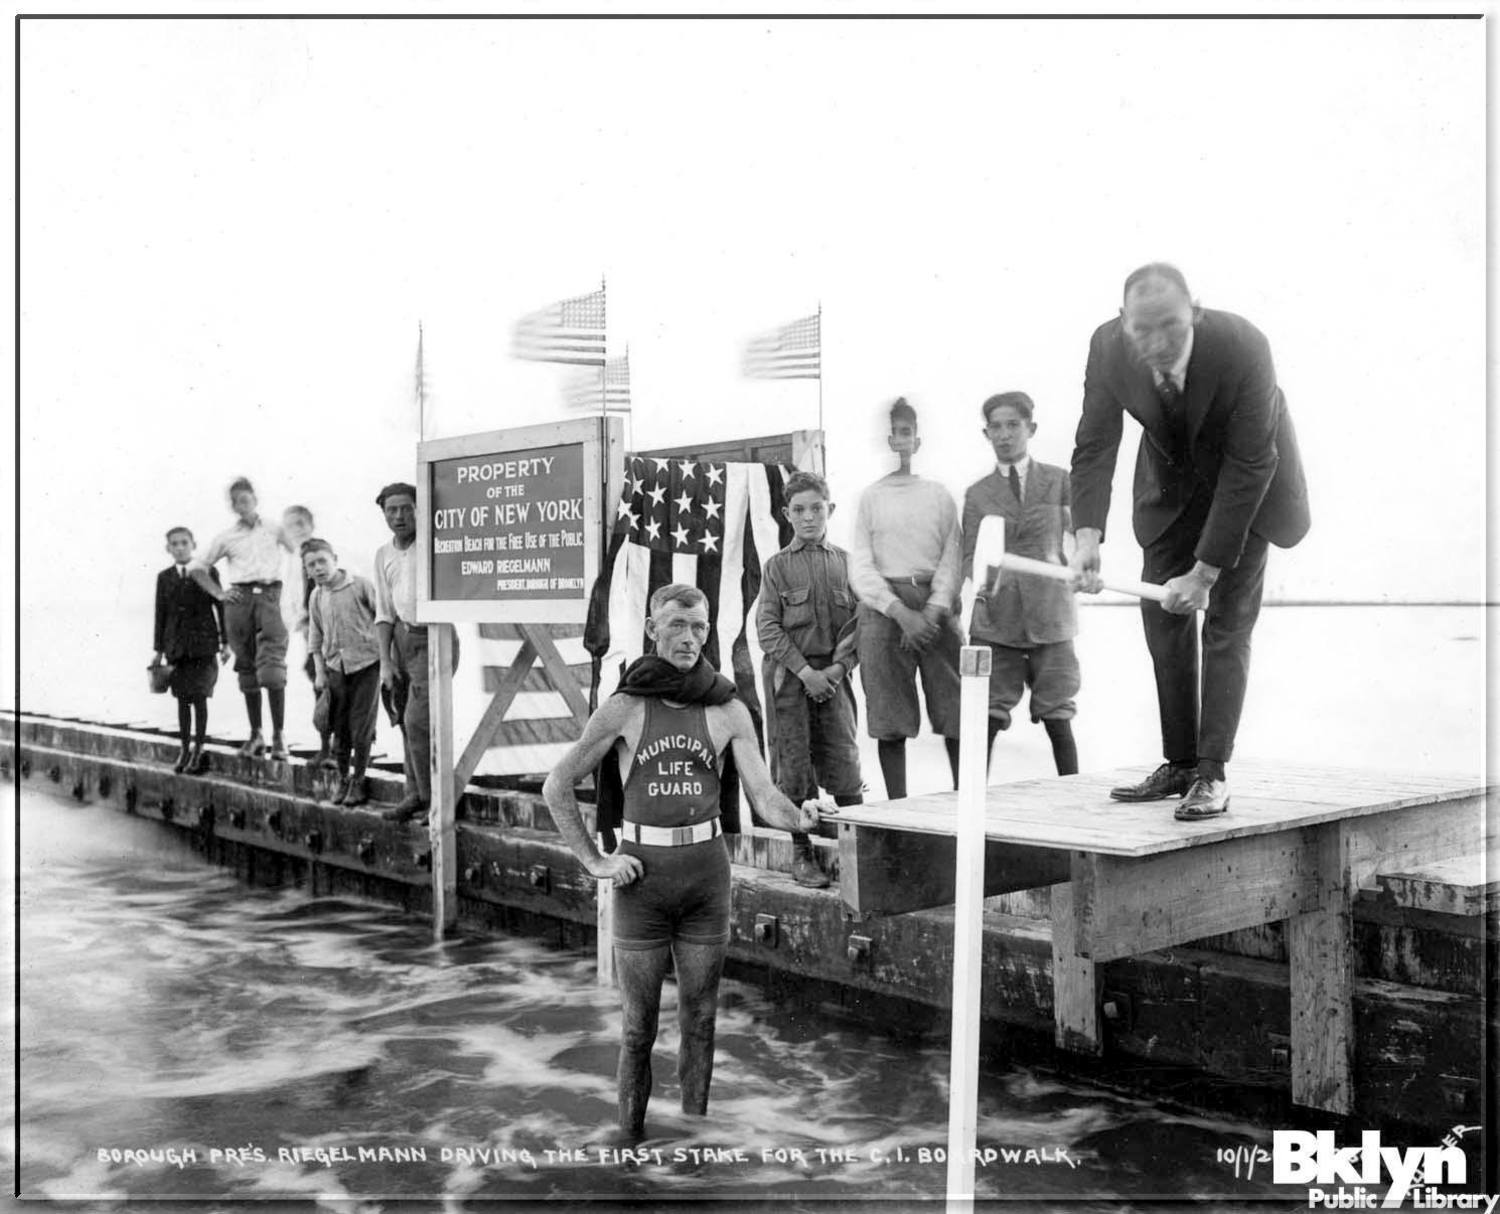 Brooklyn borough president Riegelmann driving the first stake for the Coney Island boardwalk, October 1st, 1921